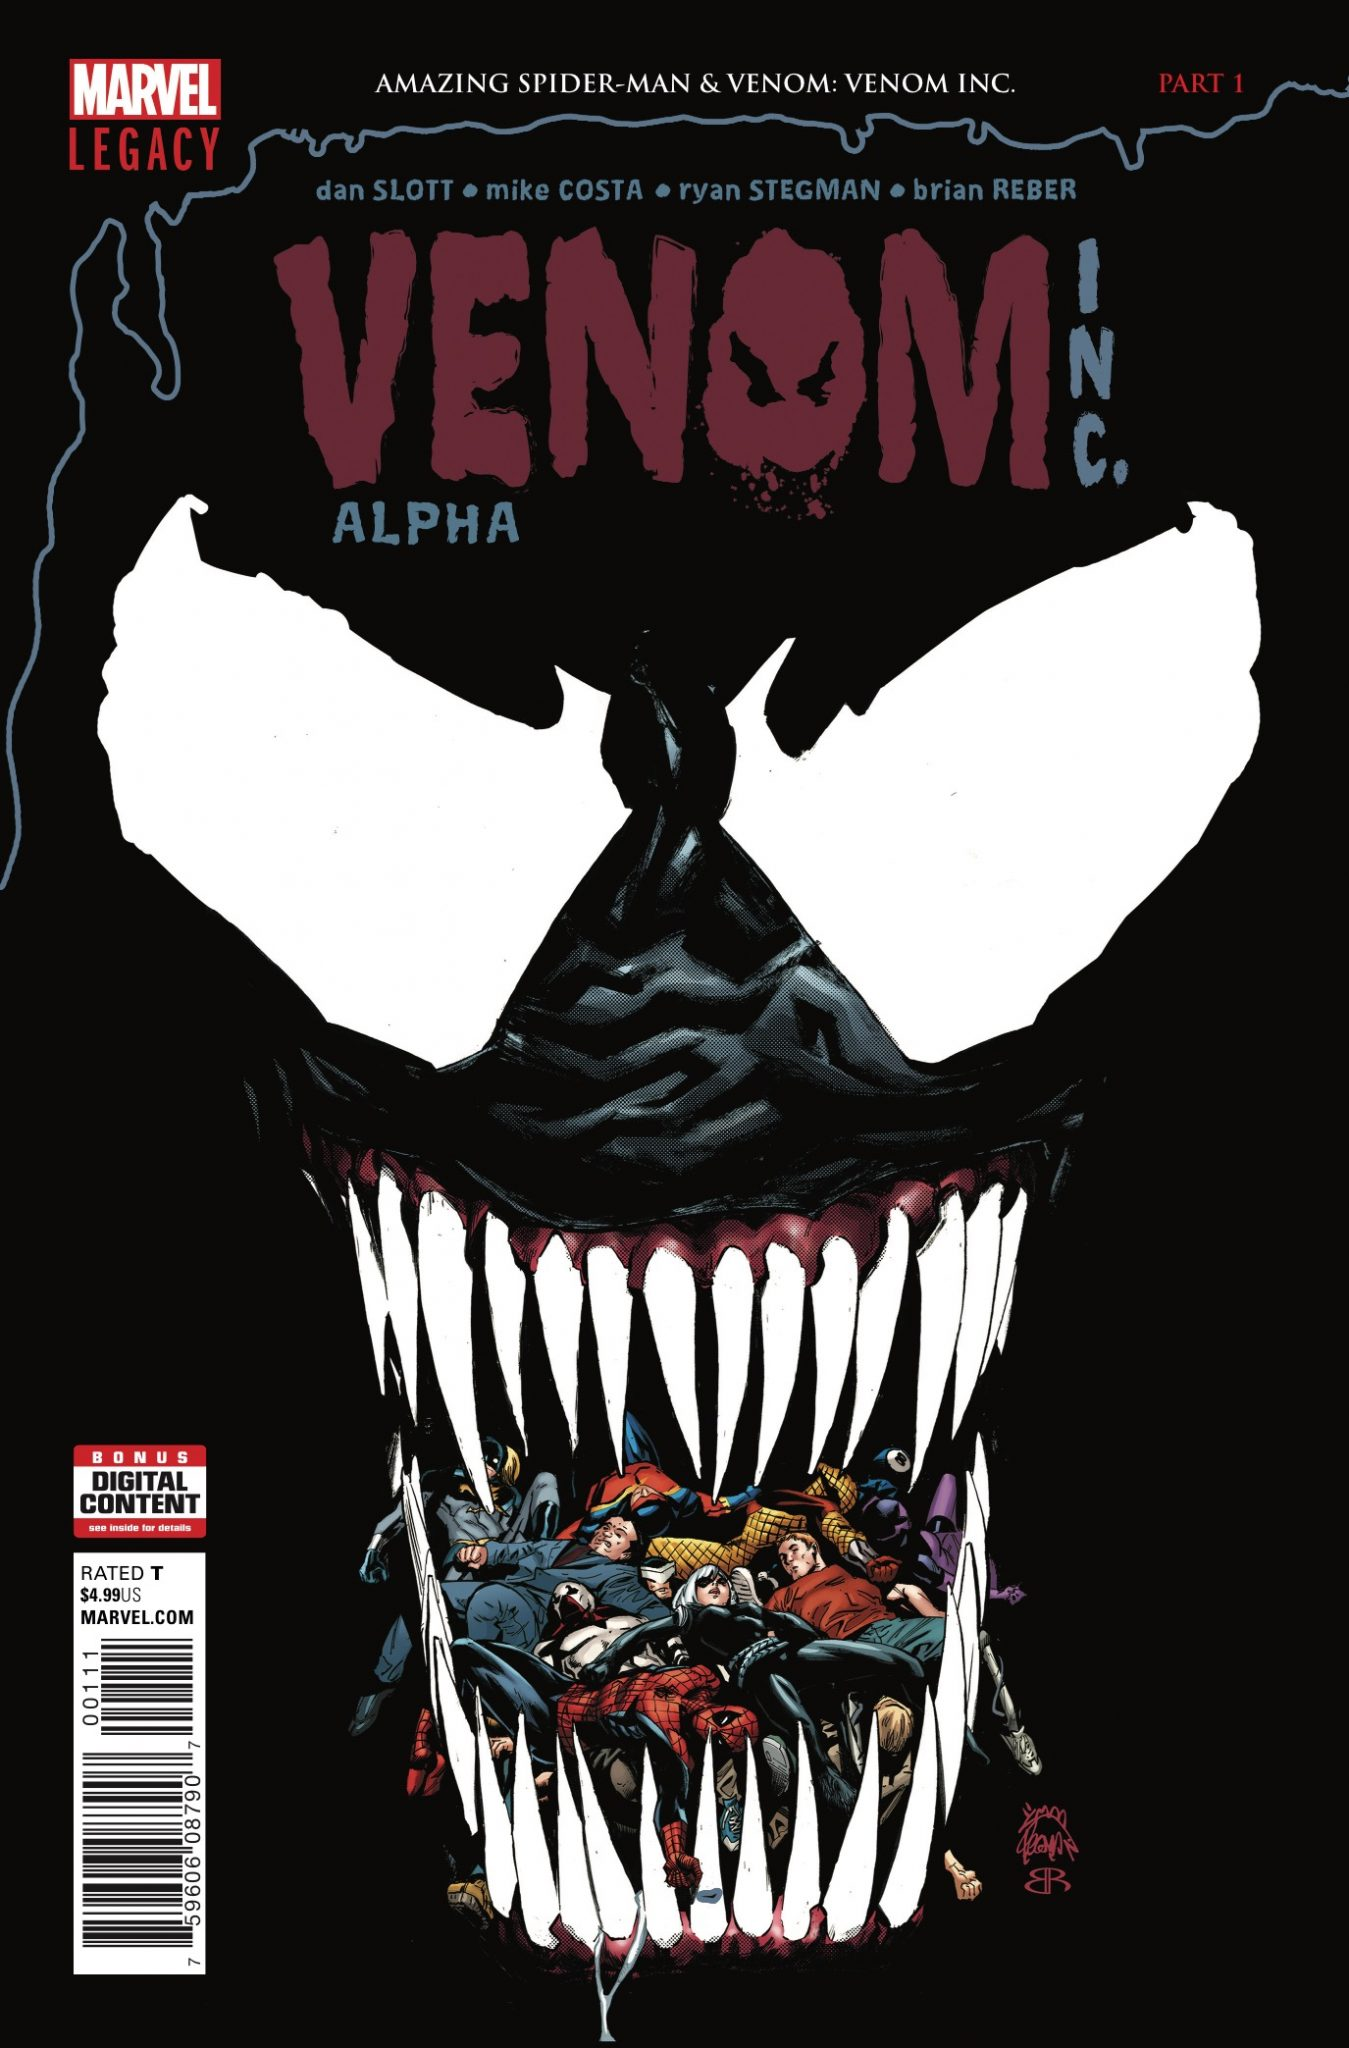 Marvel Preview: Amazing Spider-Man: Venom Inc. Alpha #1